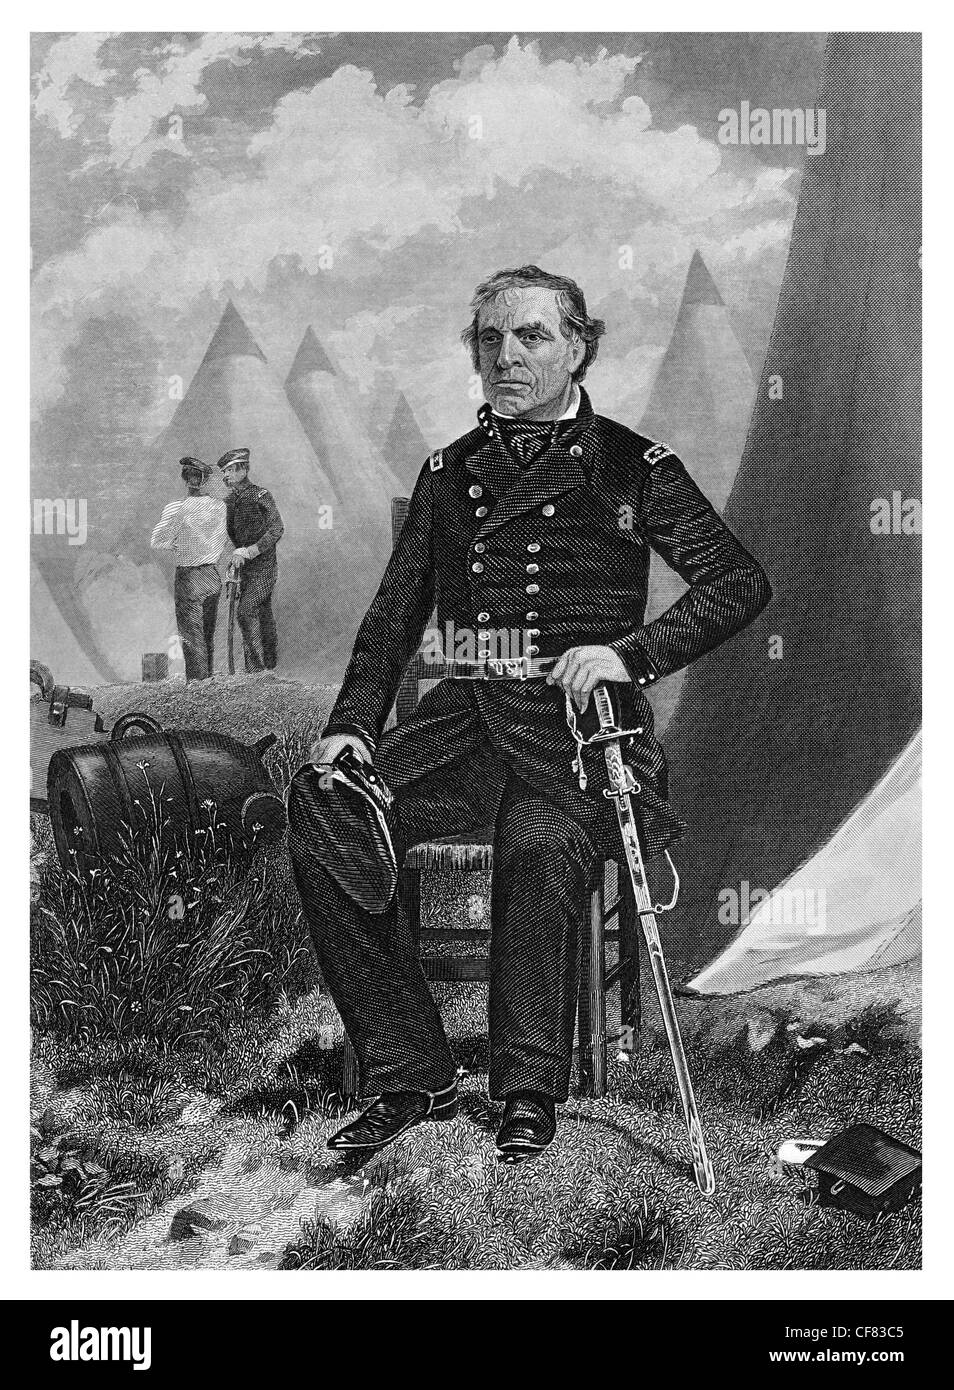 Zachary Taylor U.S. Army Major general whig 1784 to 1850 12th president of the United States 1849 to 1850 - Stock Image